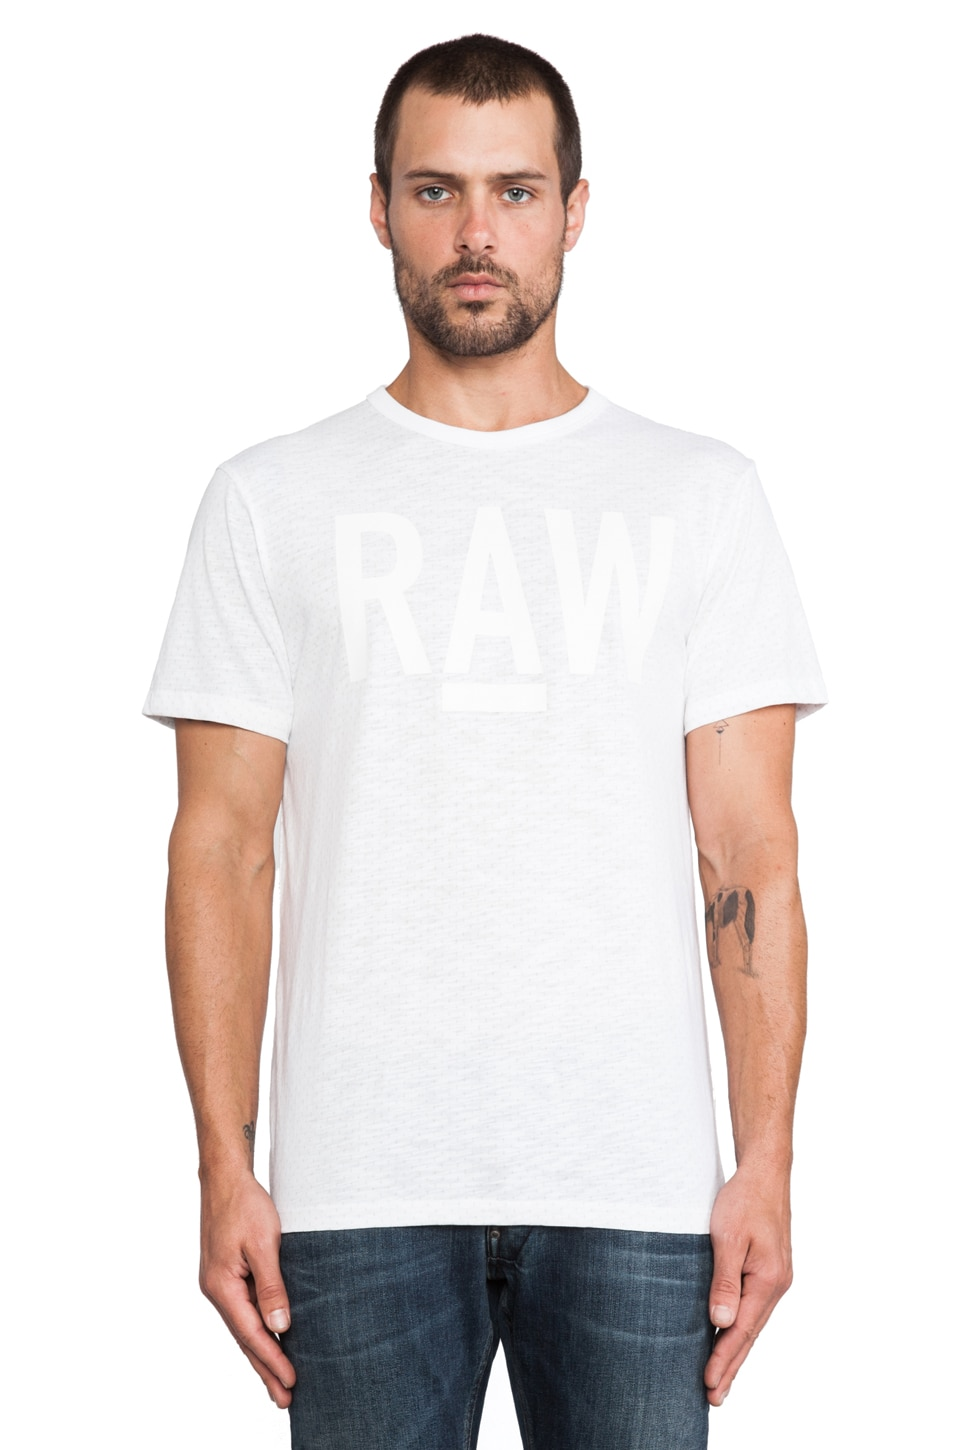 G-Star Terrams Tee in White